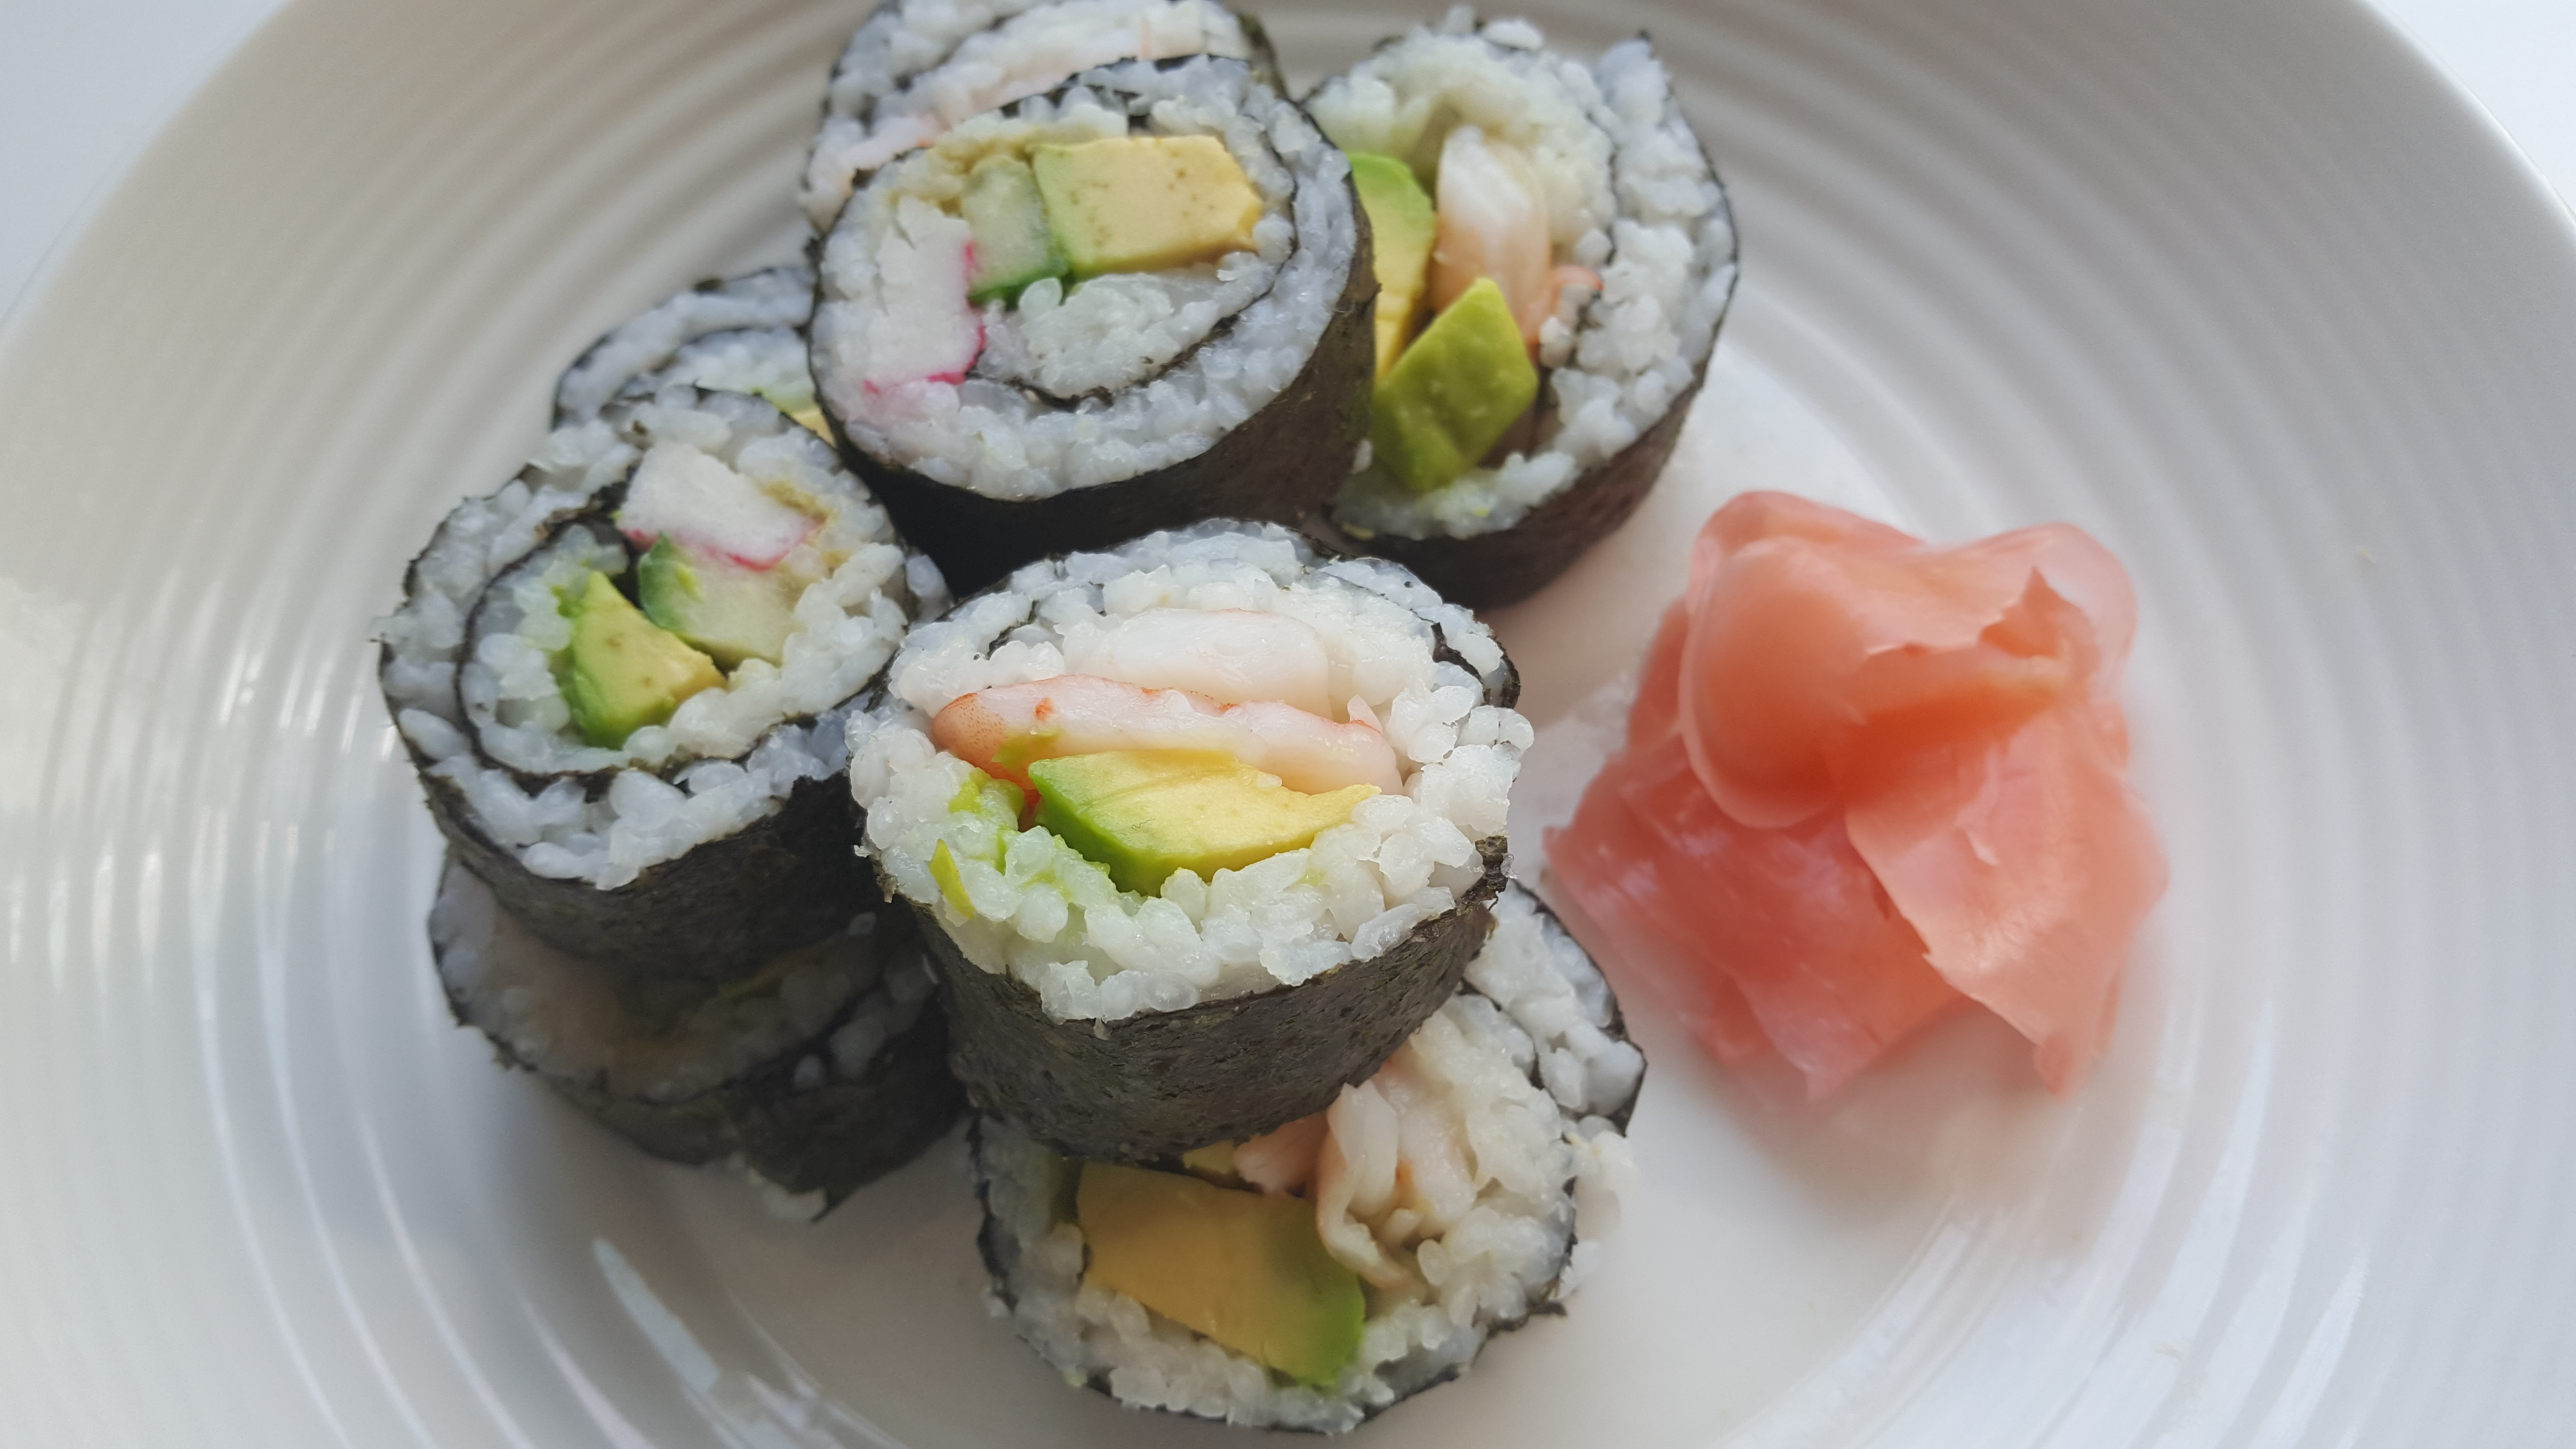 Sushi and Miso Cooking Class with Cracking Good Food: Saturday 24th June 2017